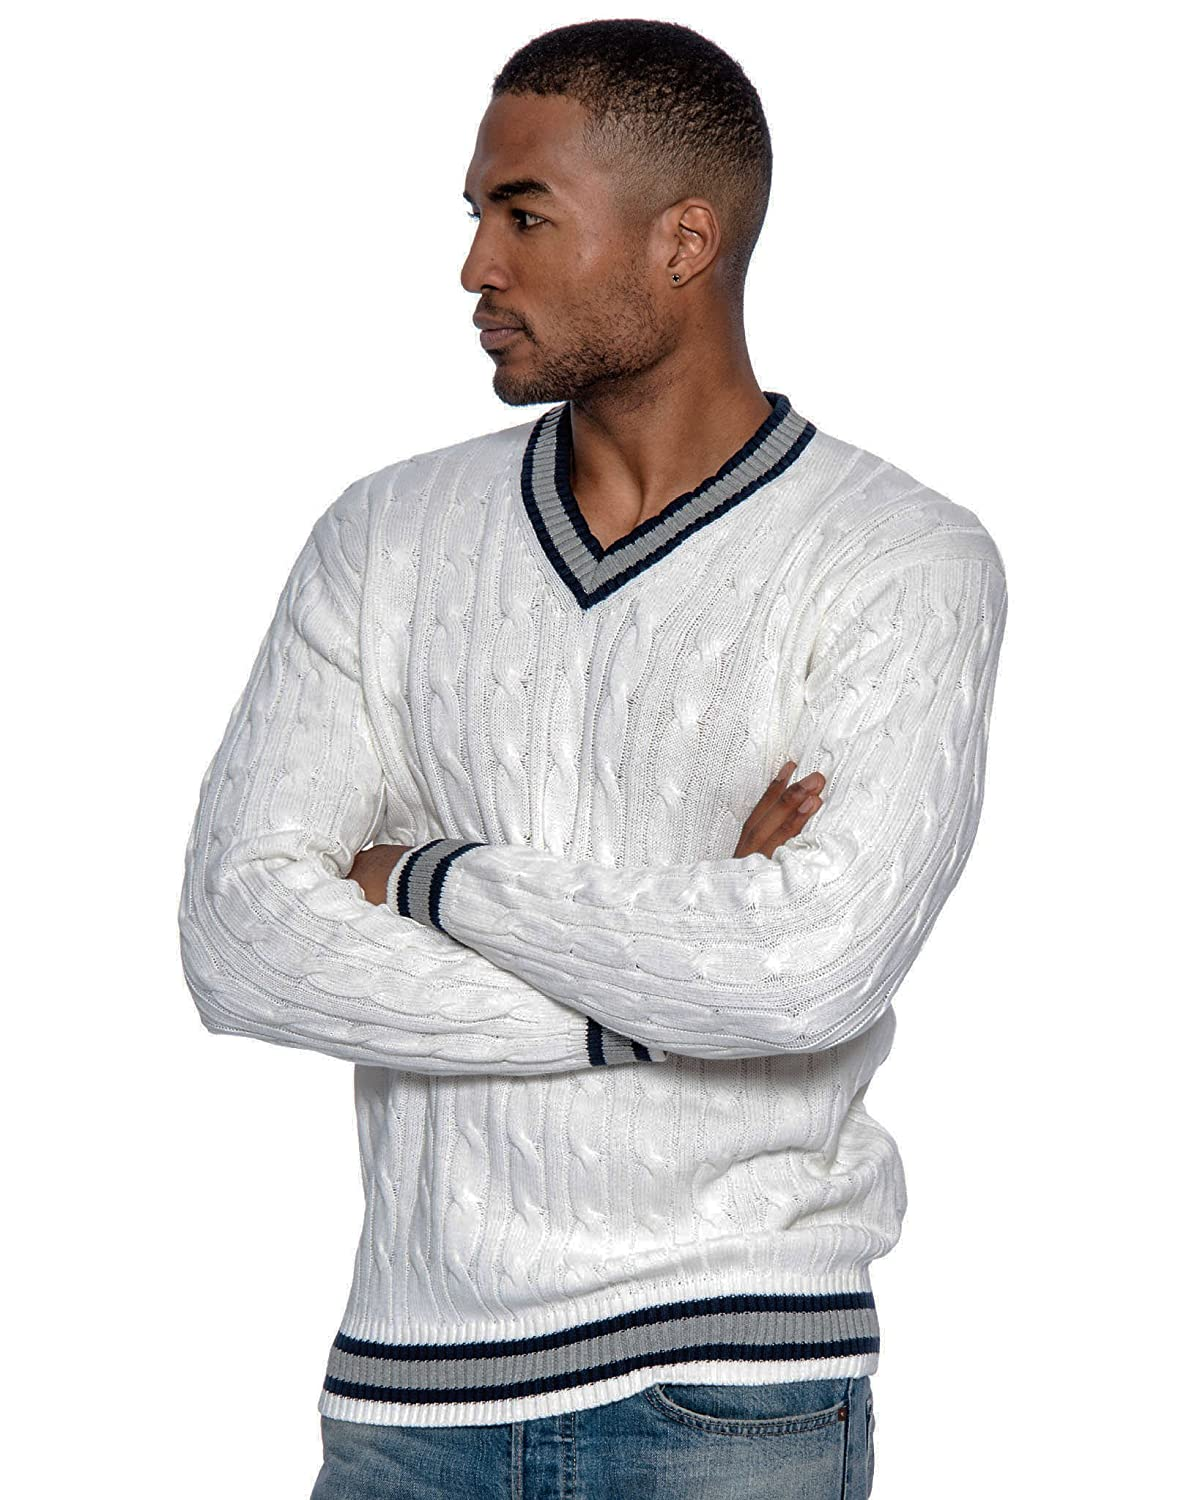 Men's Vintage Style Sweaters – 1920s to 1960s Fit Cable Knit V-Neck Sweater $29.99 AT vintagedancer.com